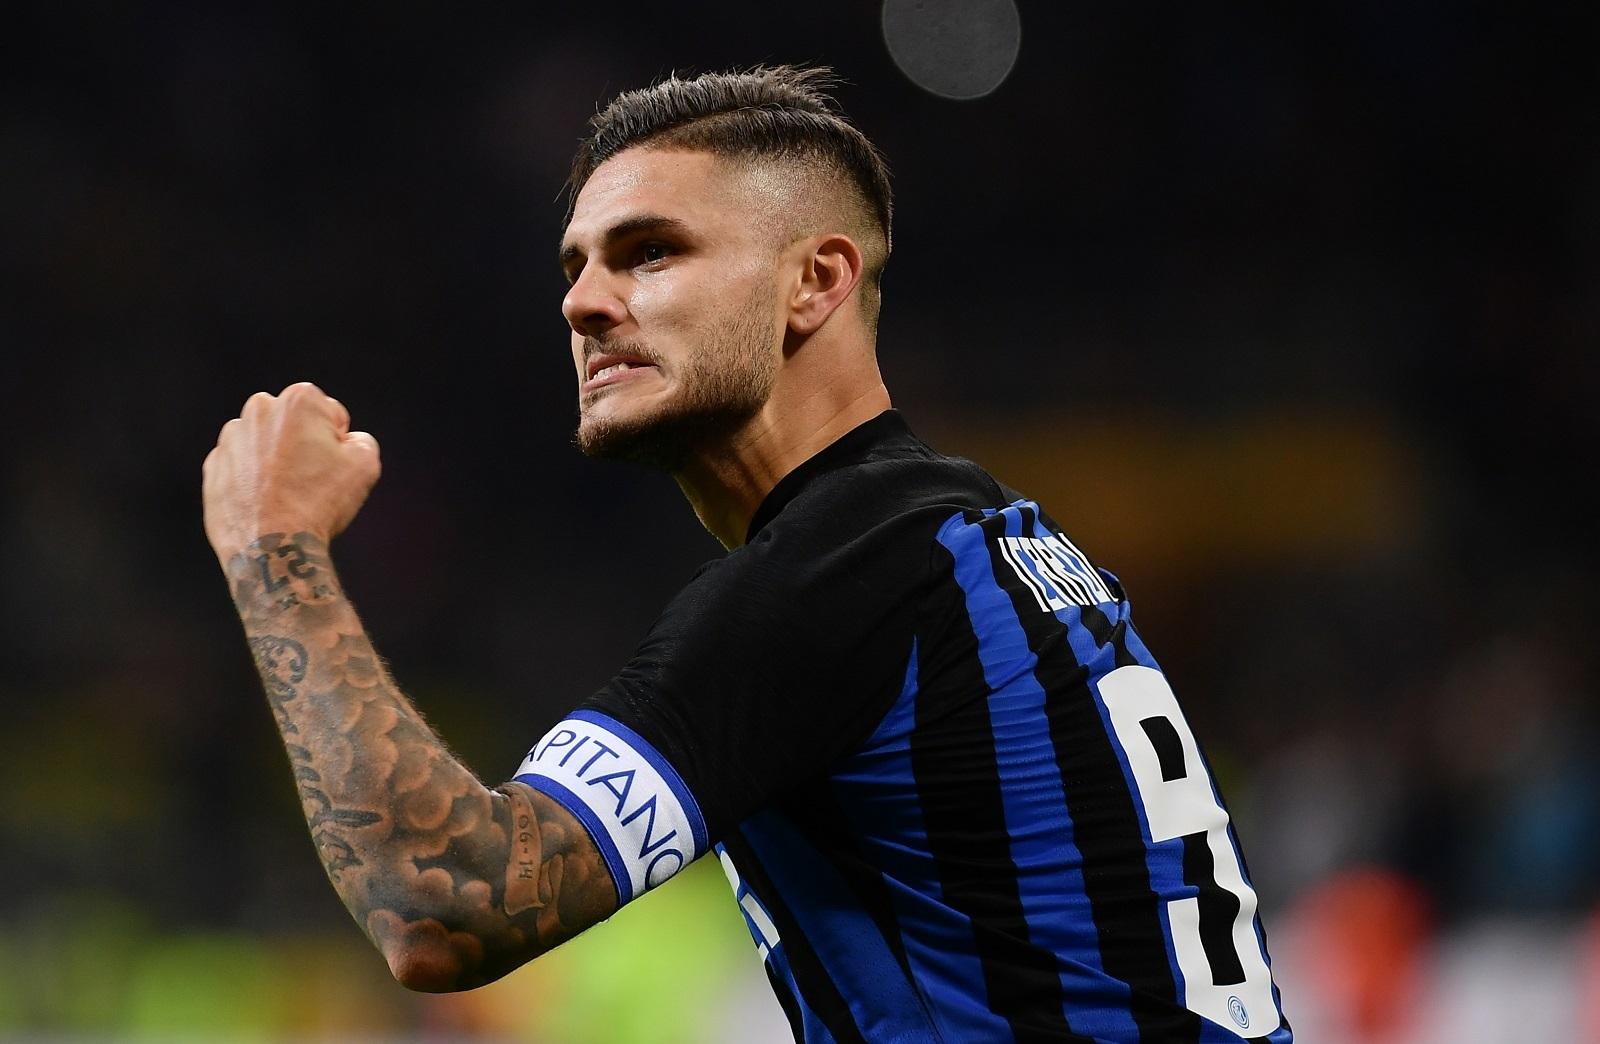 Ligue Europa: en froid avec l'Inter, Icardi assume et cite... Mark Twain